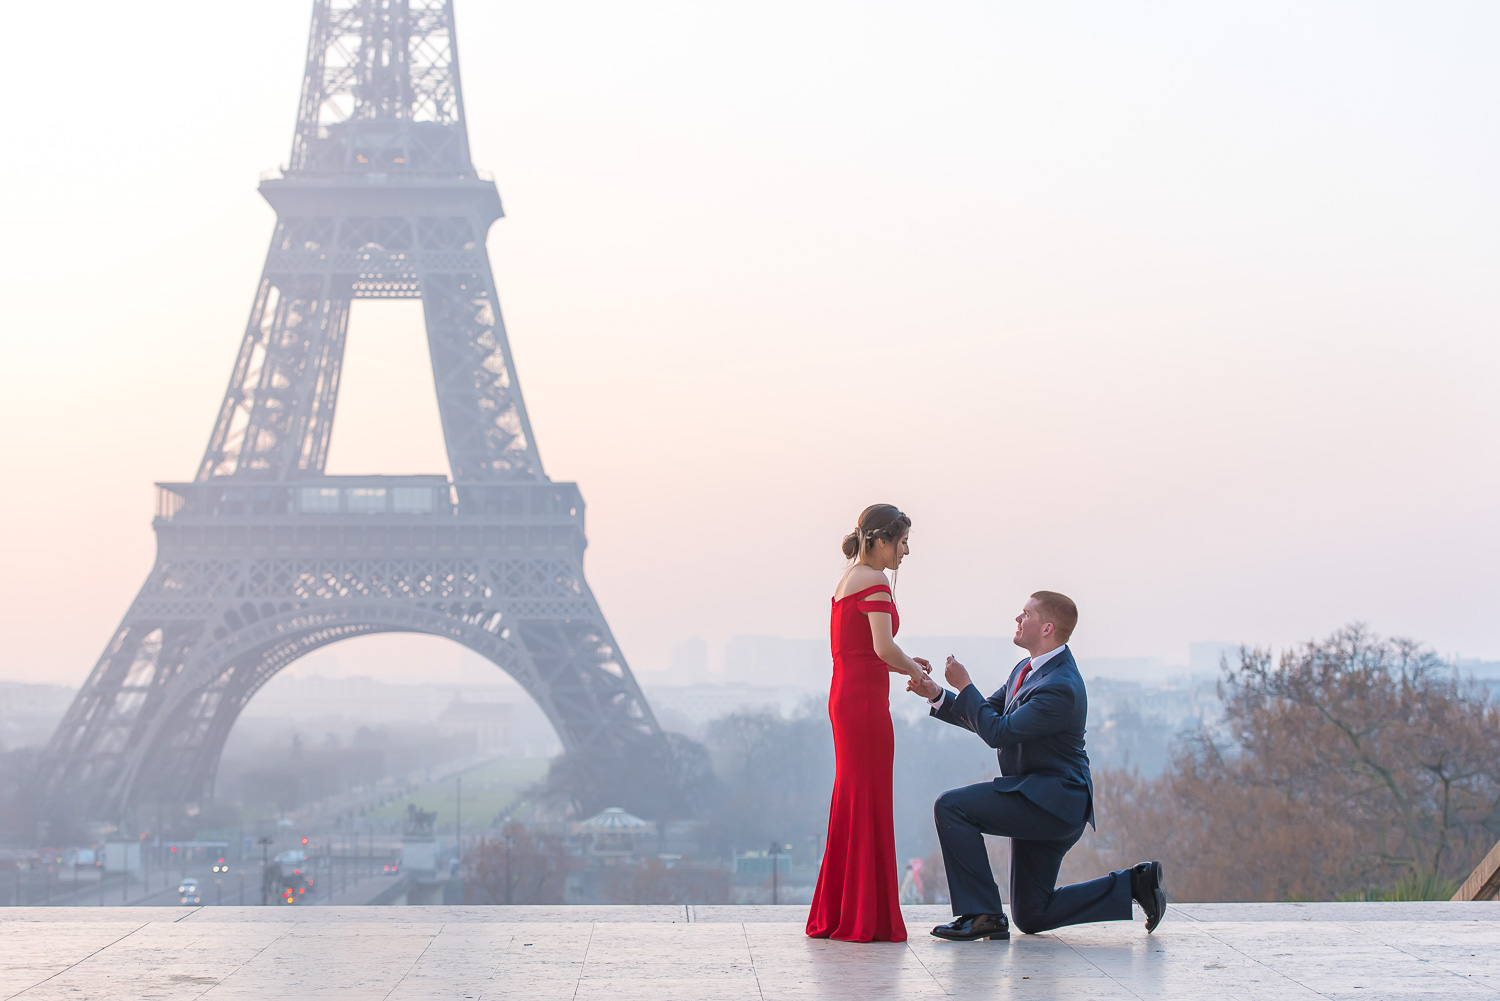 sunrise at Eiffel Tower - Trocadero proposal